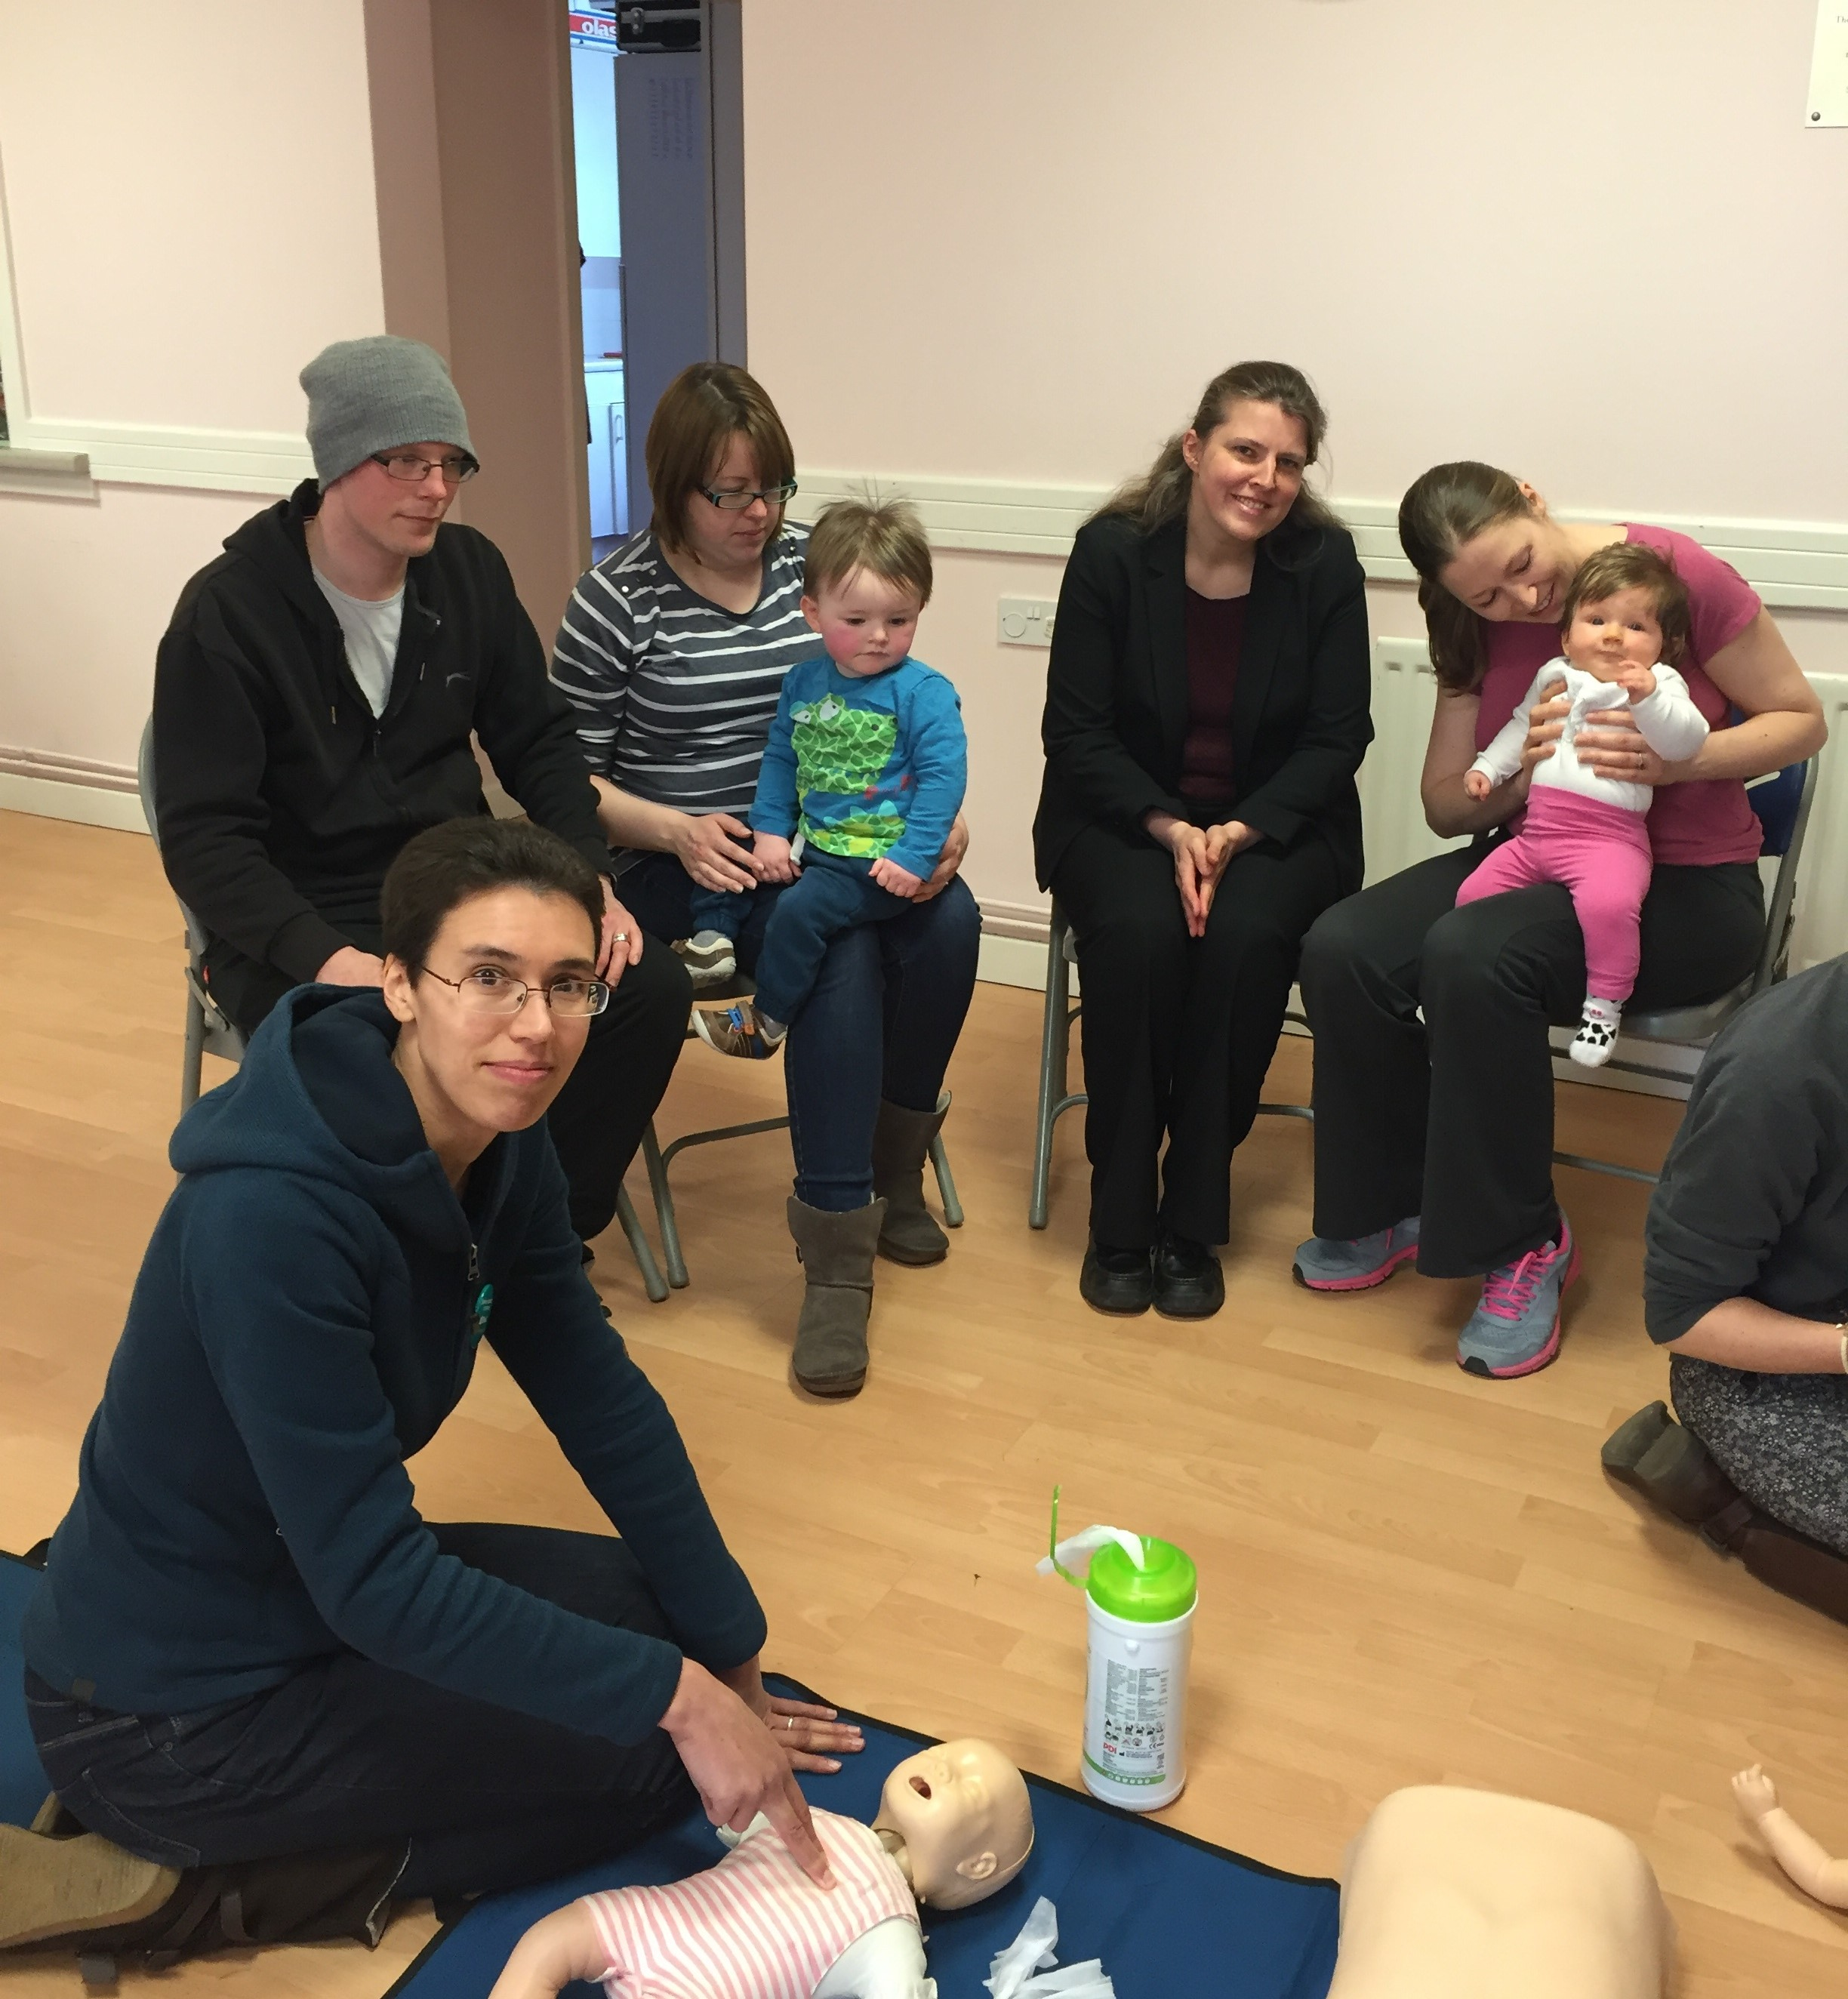 Rachael_Maskell_MP_at_Life_Saving_Class_(2).jpg